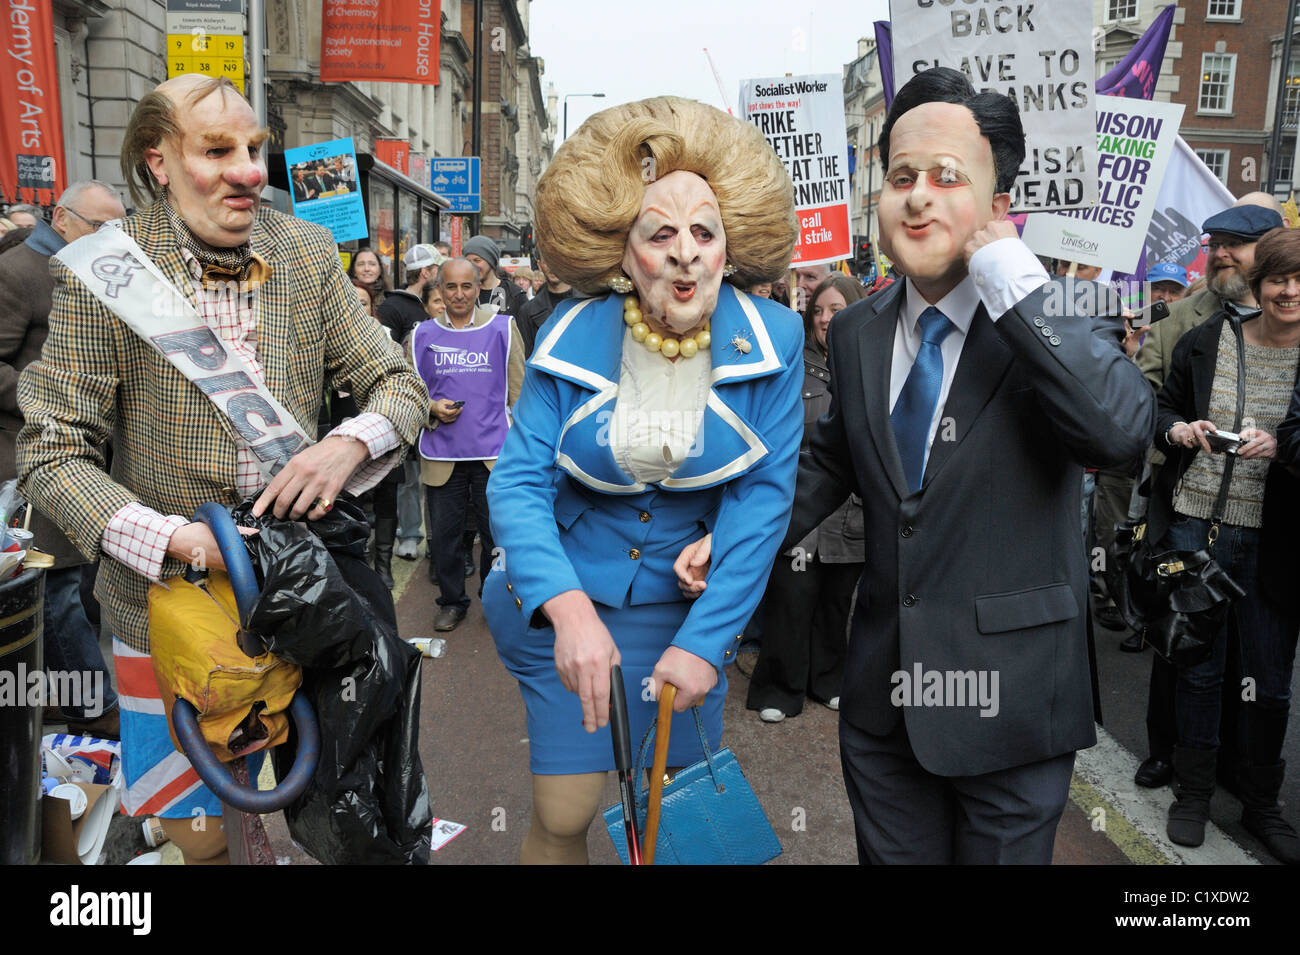 Margaret Thatcher and David Cameron at TUC Anti-Spending Cuts March, London 26th March 2011 - Stock Image